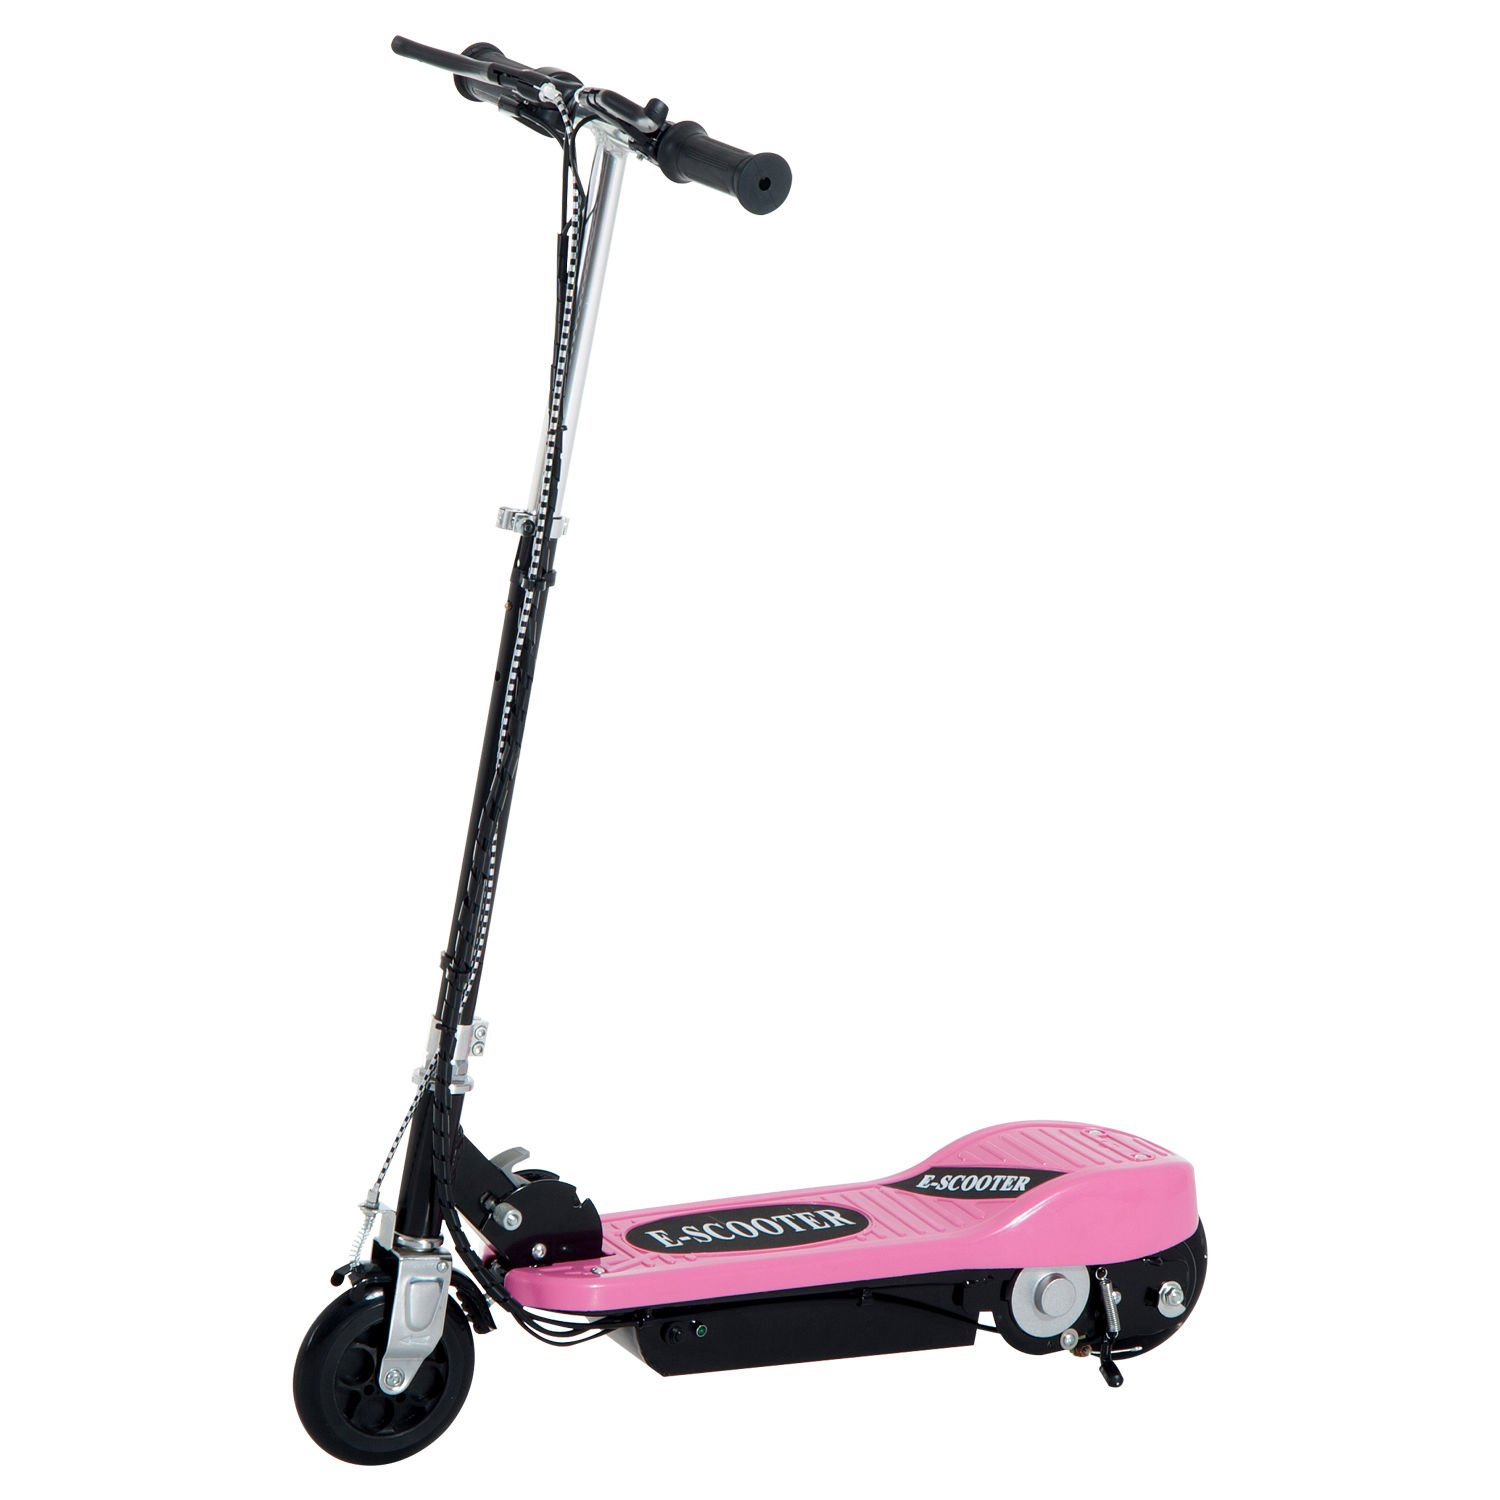 Elektro scooter kinder